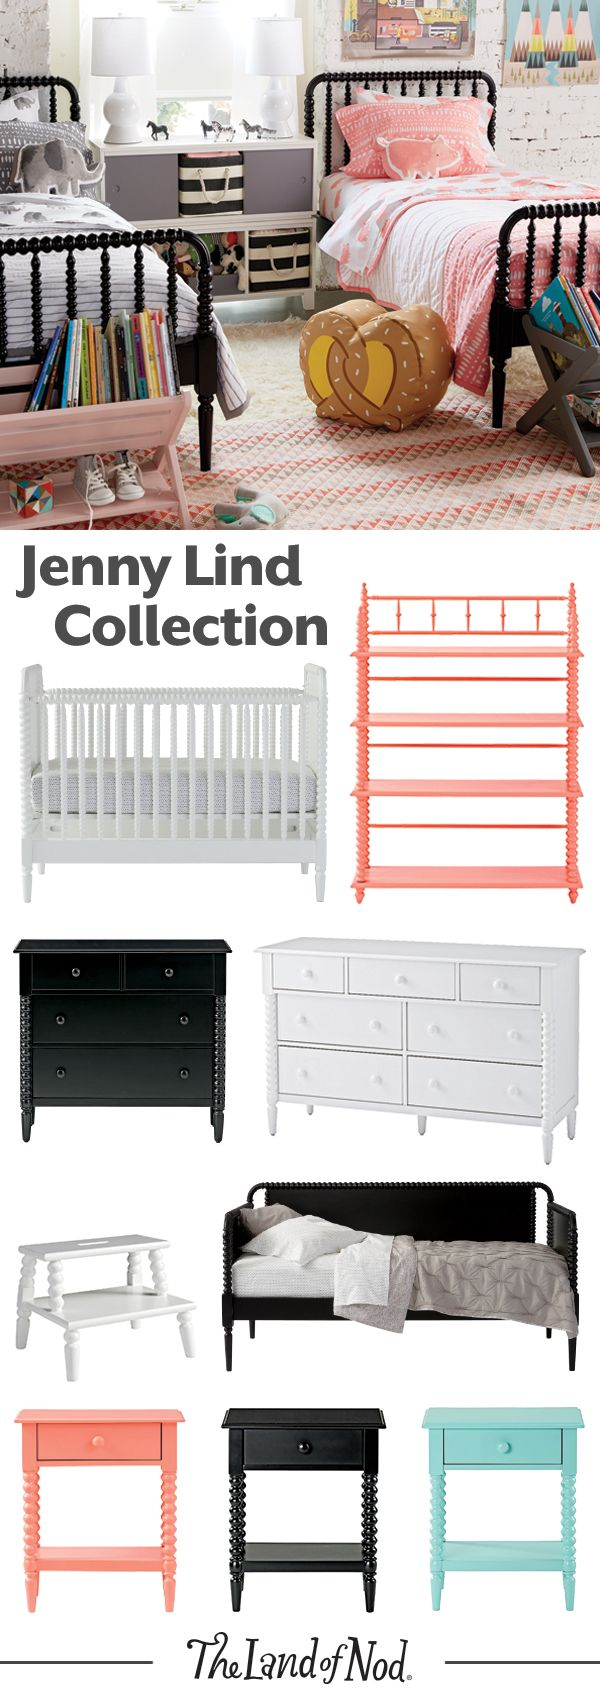 Featuring intricate wood turnings and a variety of stunning finishes, our Jenny Lind Collection is the perfect kids furniture for a boys room or girls room.